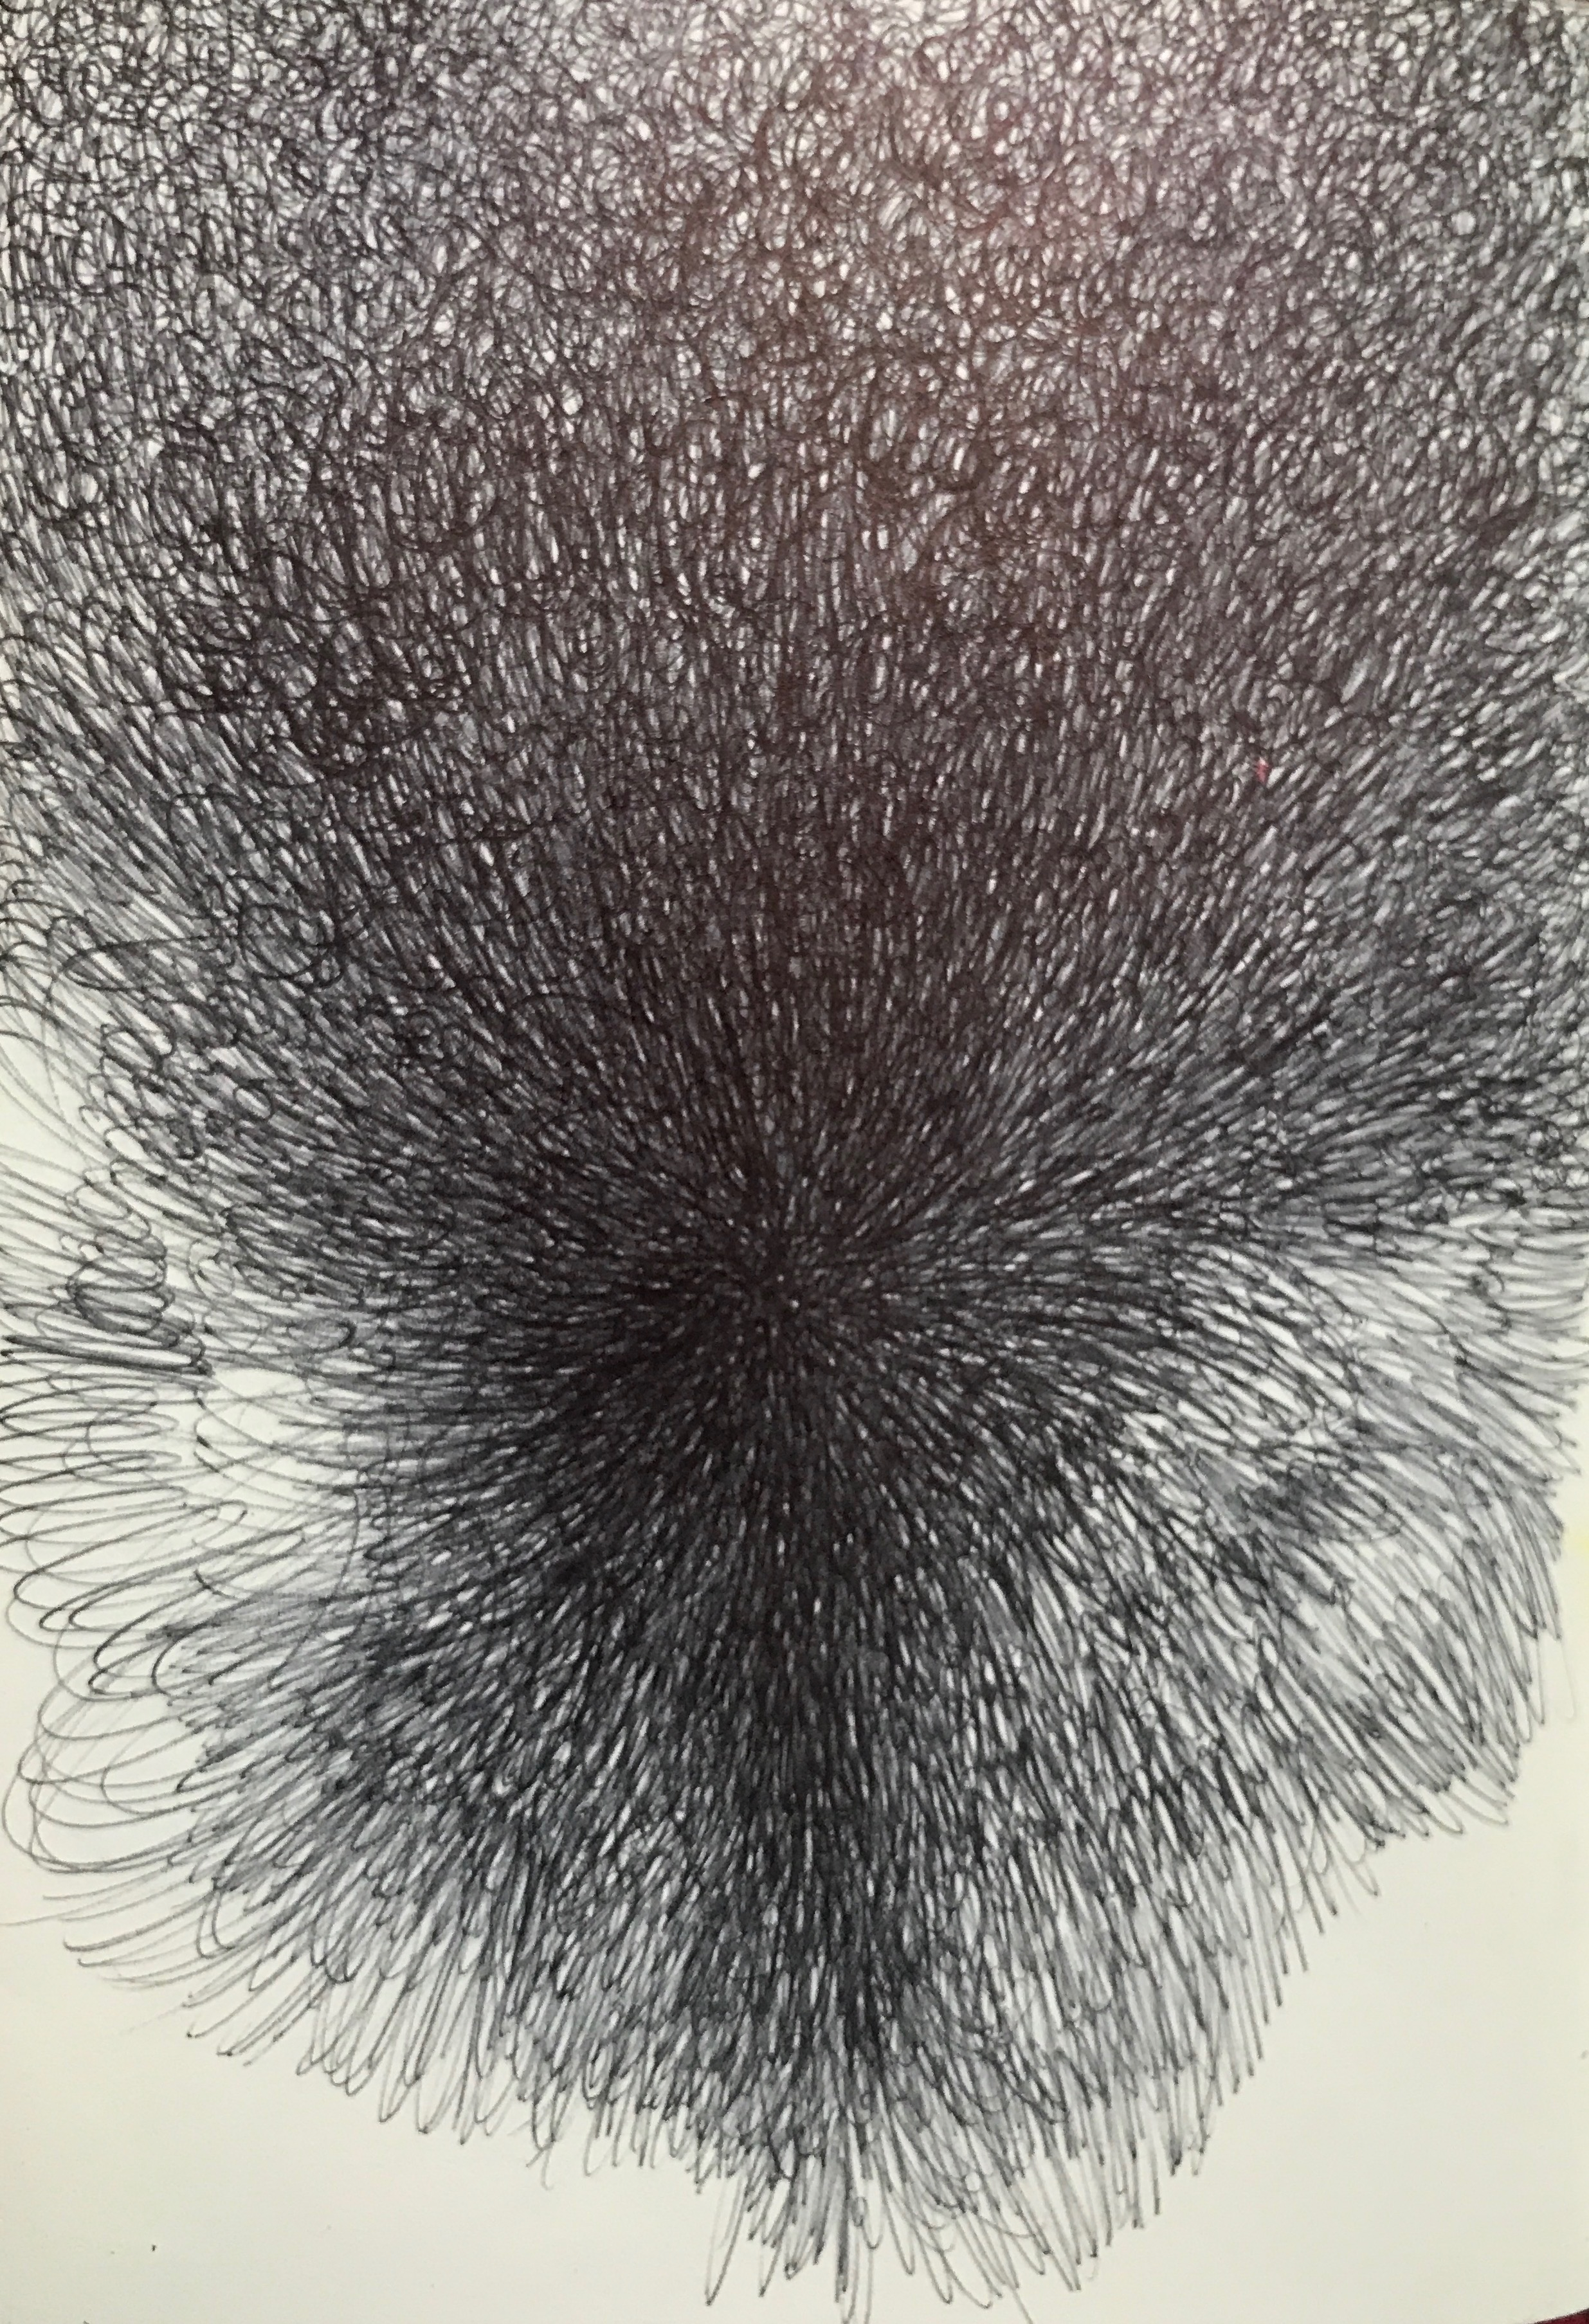 034 'Explosion' Drawing